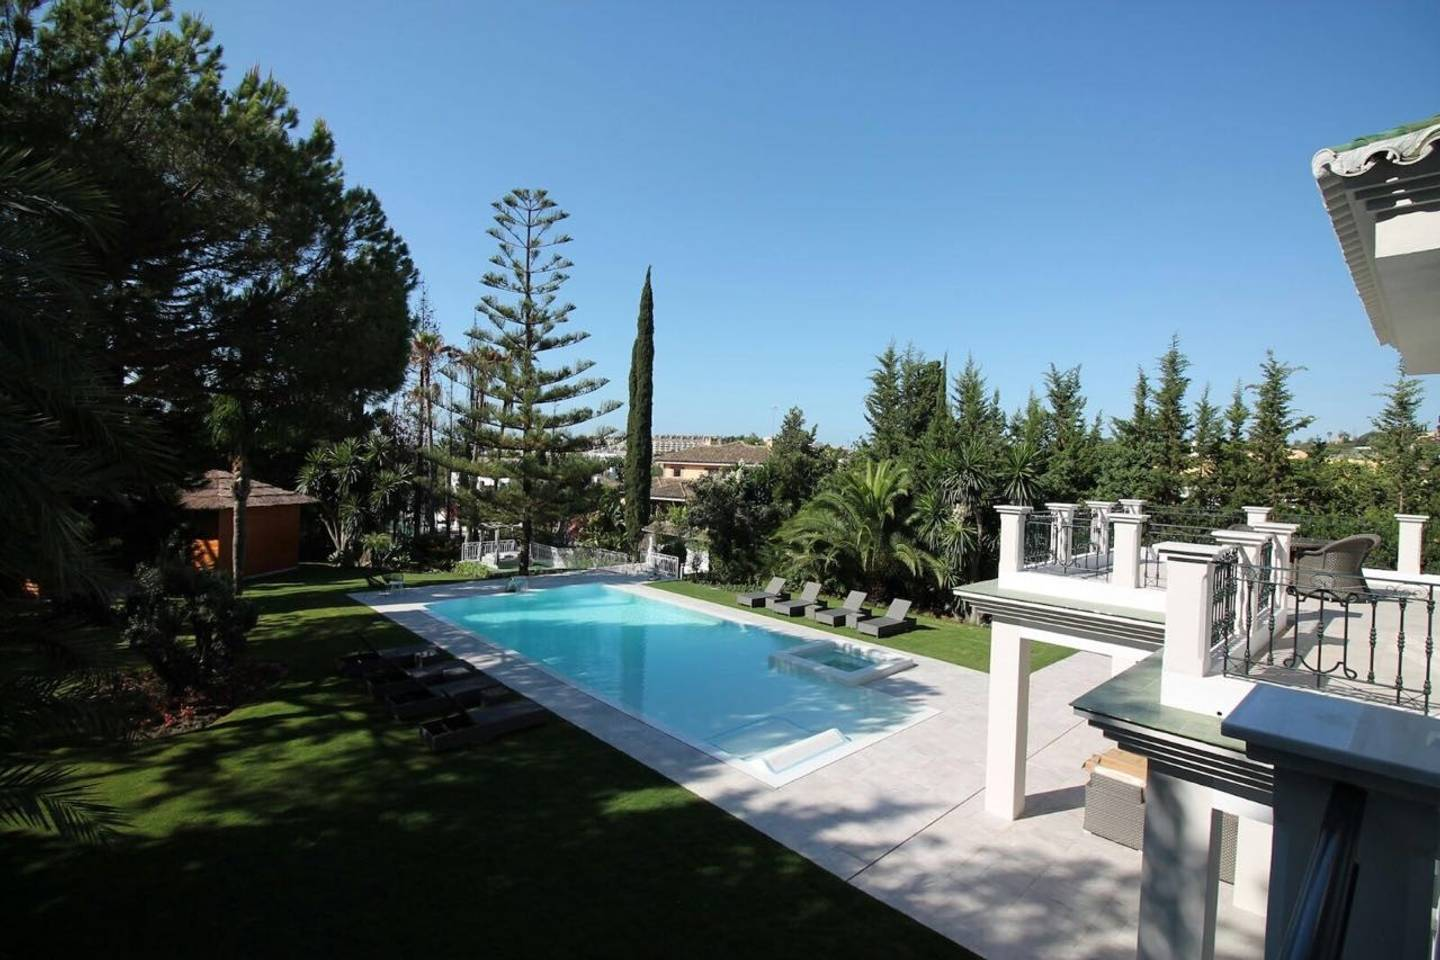 Apartment CHIC Spanish Villa pool   spa next to golf cours photo 25684335